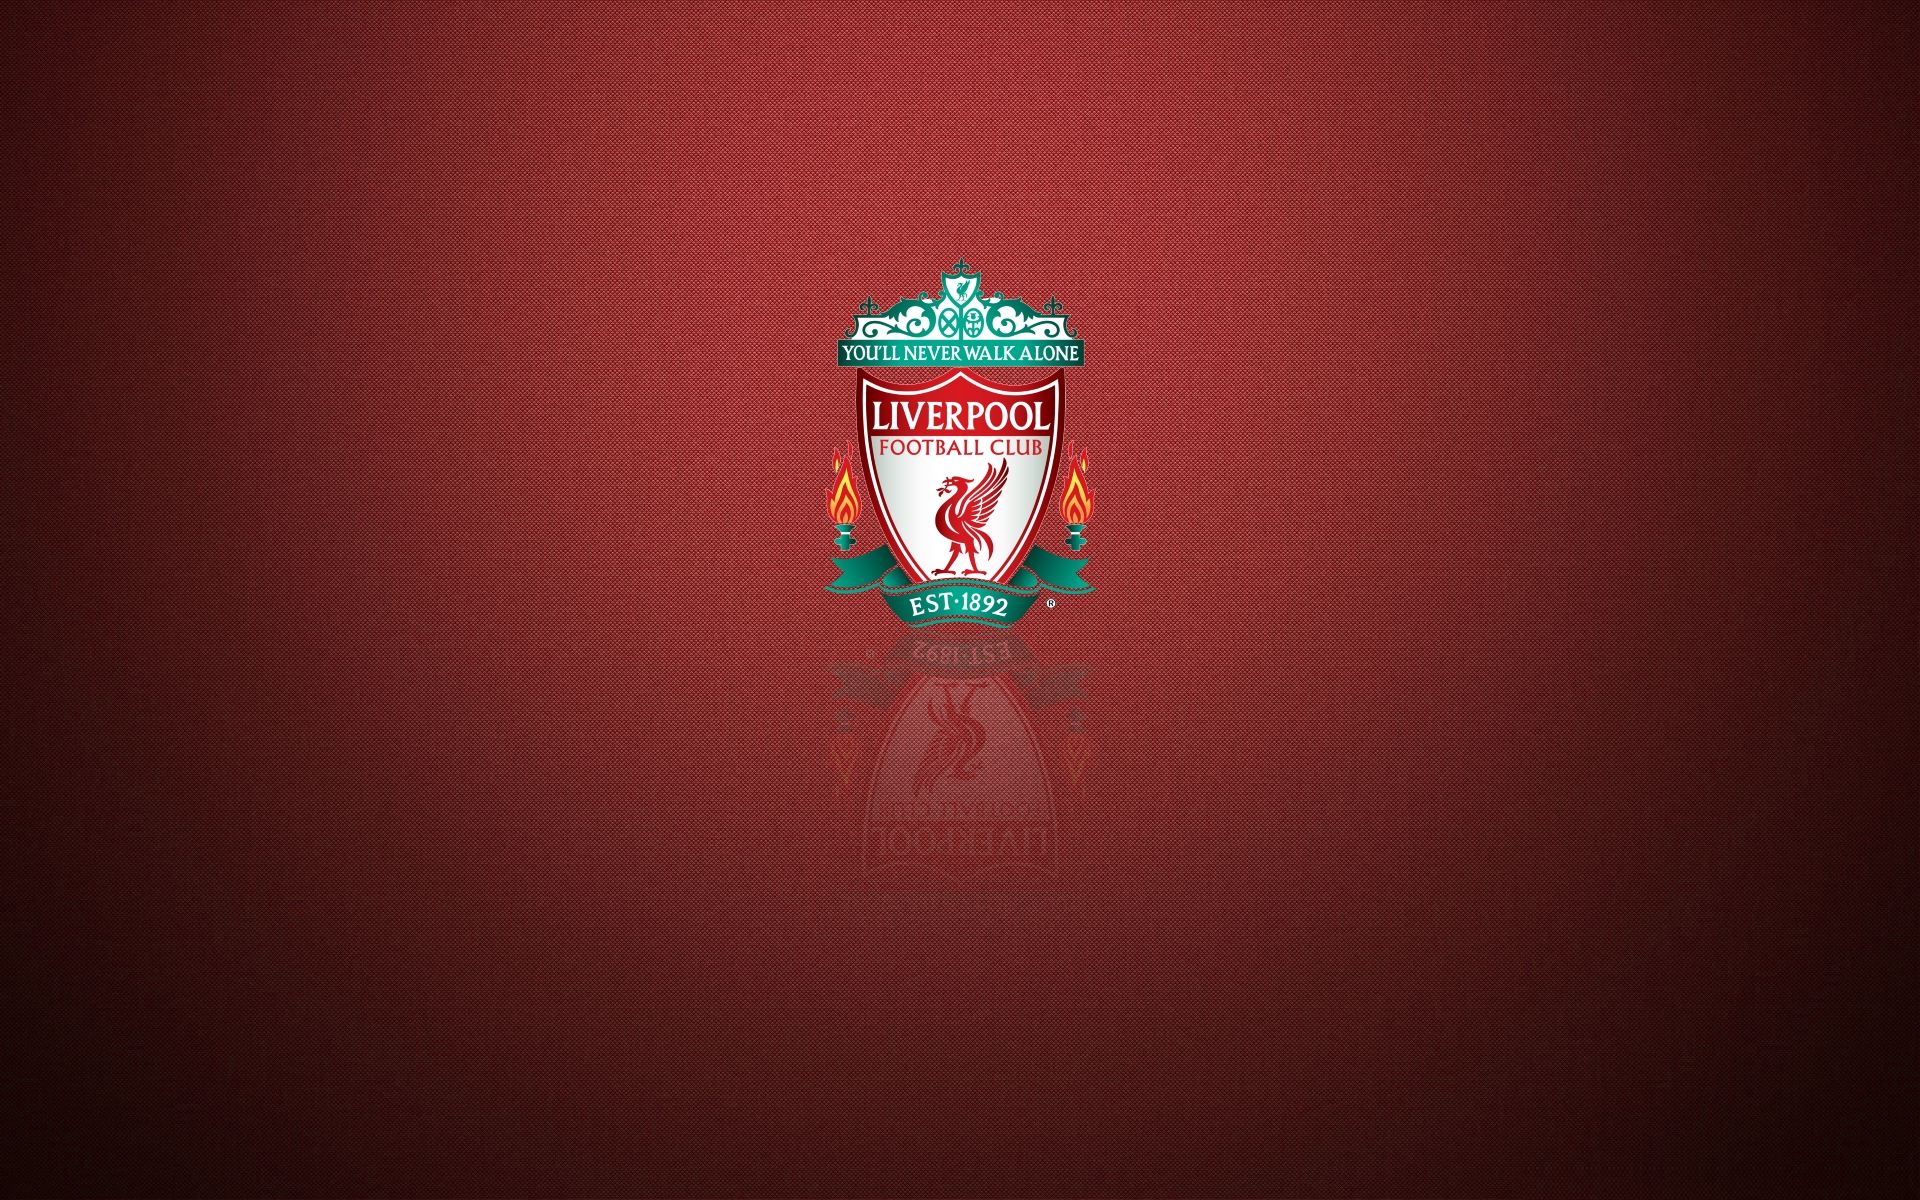 Wallpaper Manchester United Hd Liverpool Fc Logos Download